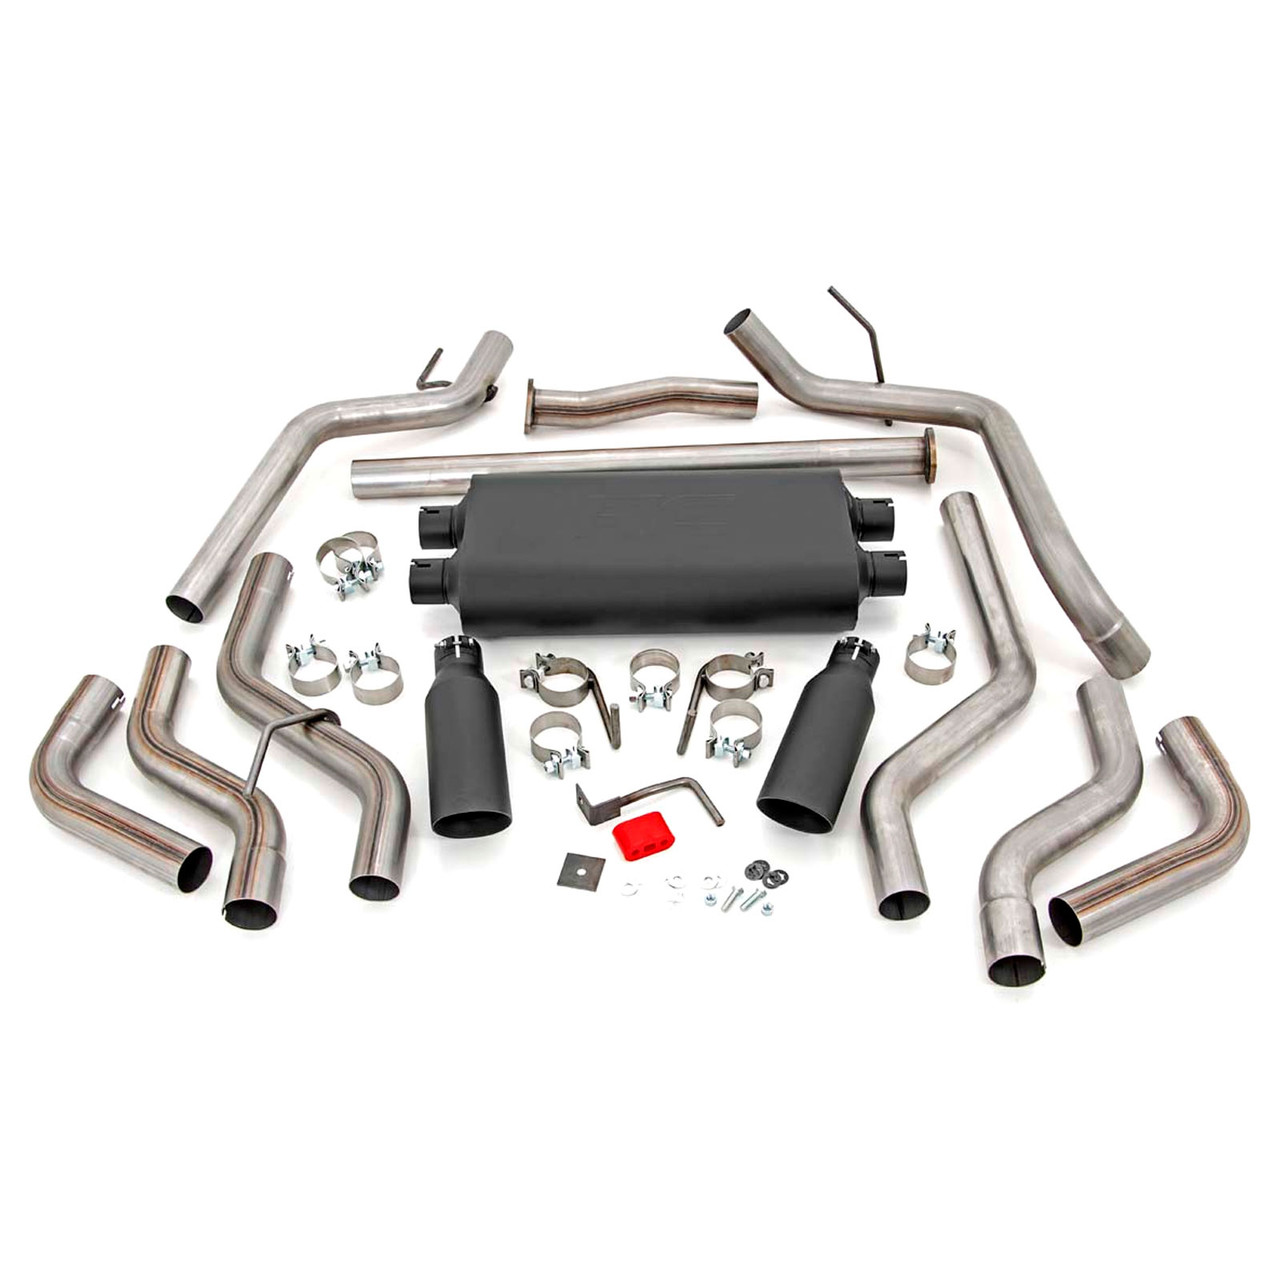 2009-2020 Toyota Tundra V8 Dual Cat Back Exhaust System with Black Tips